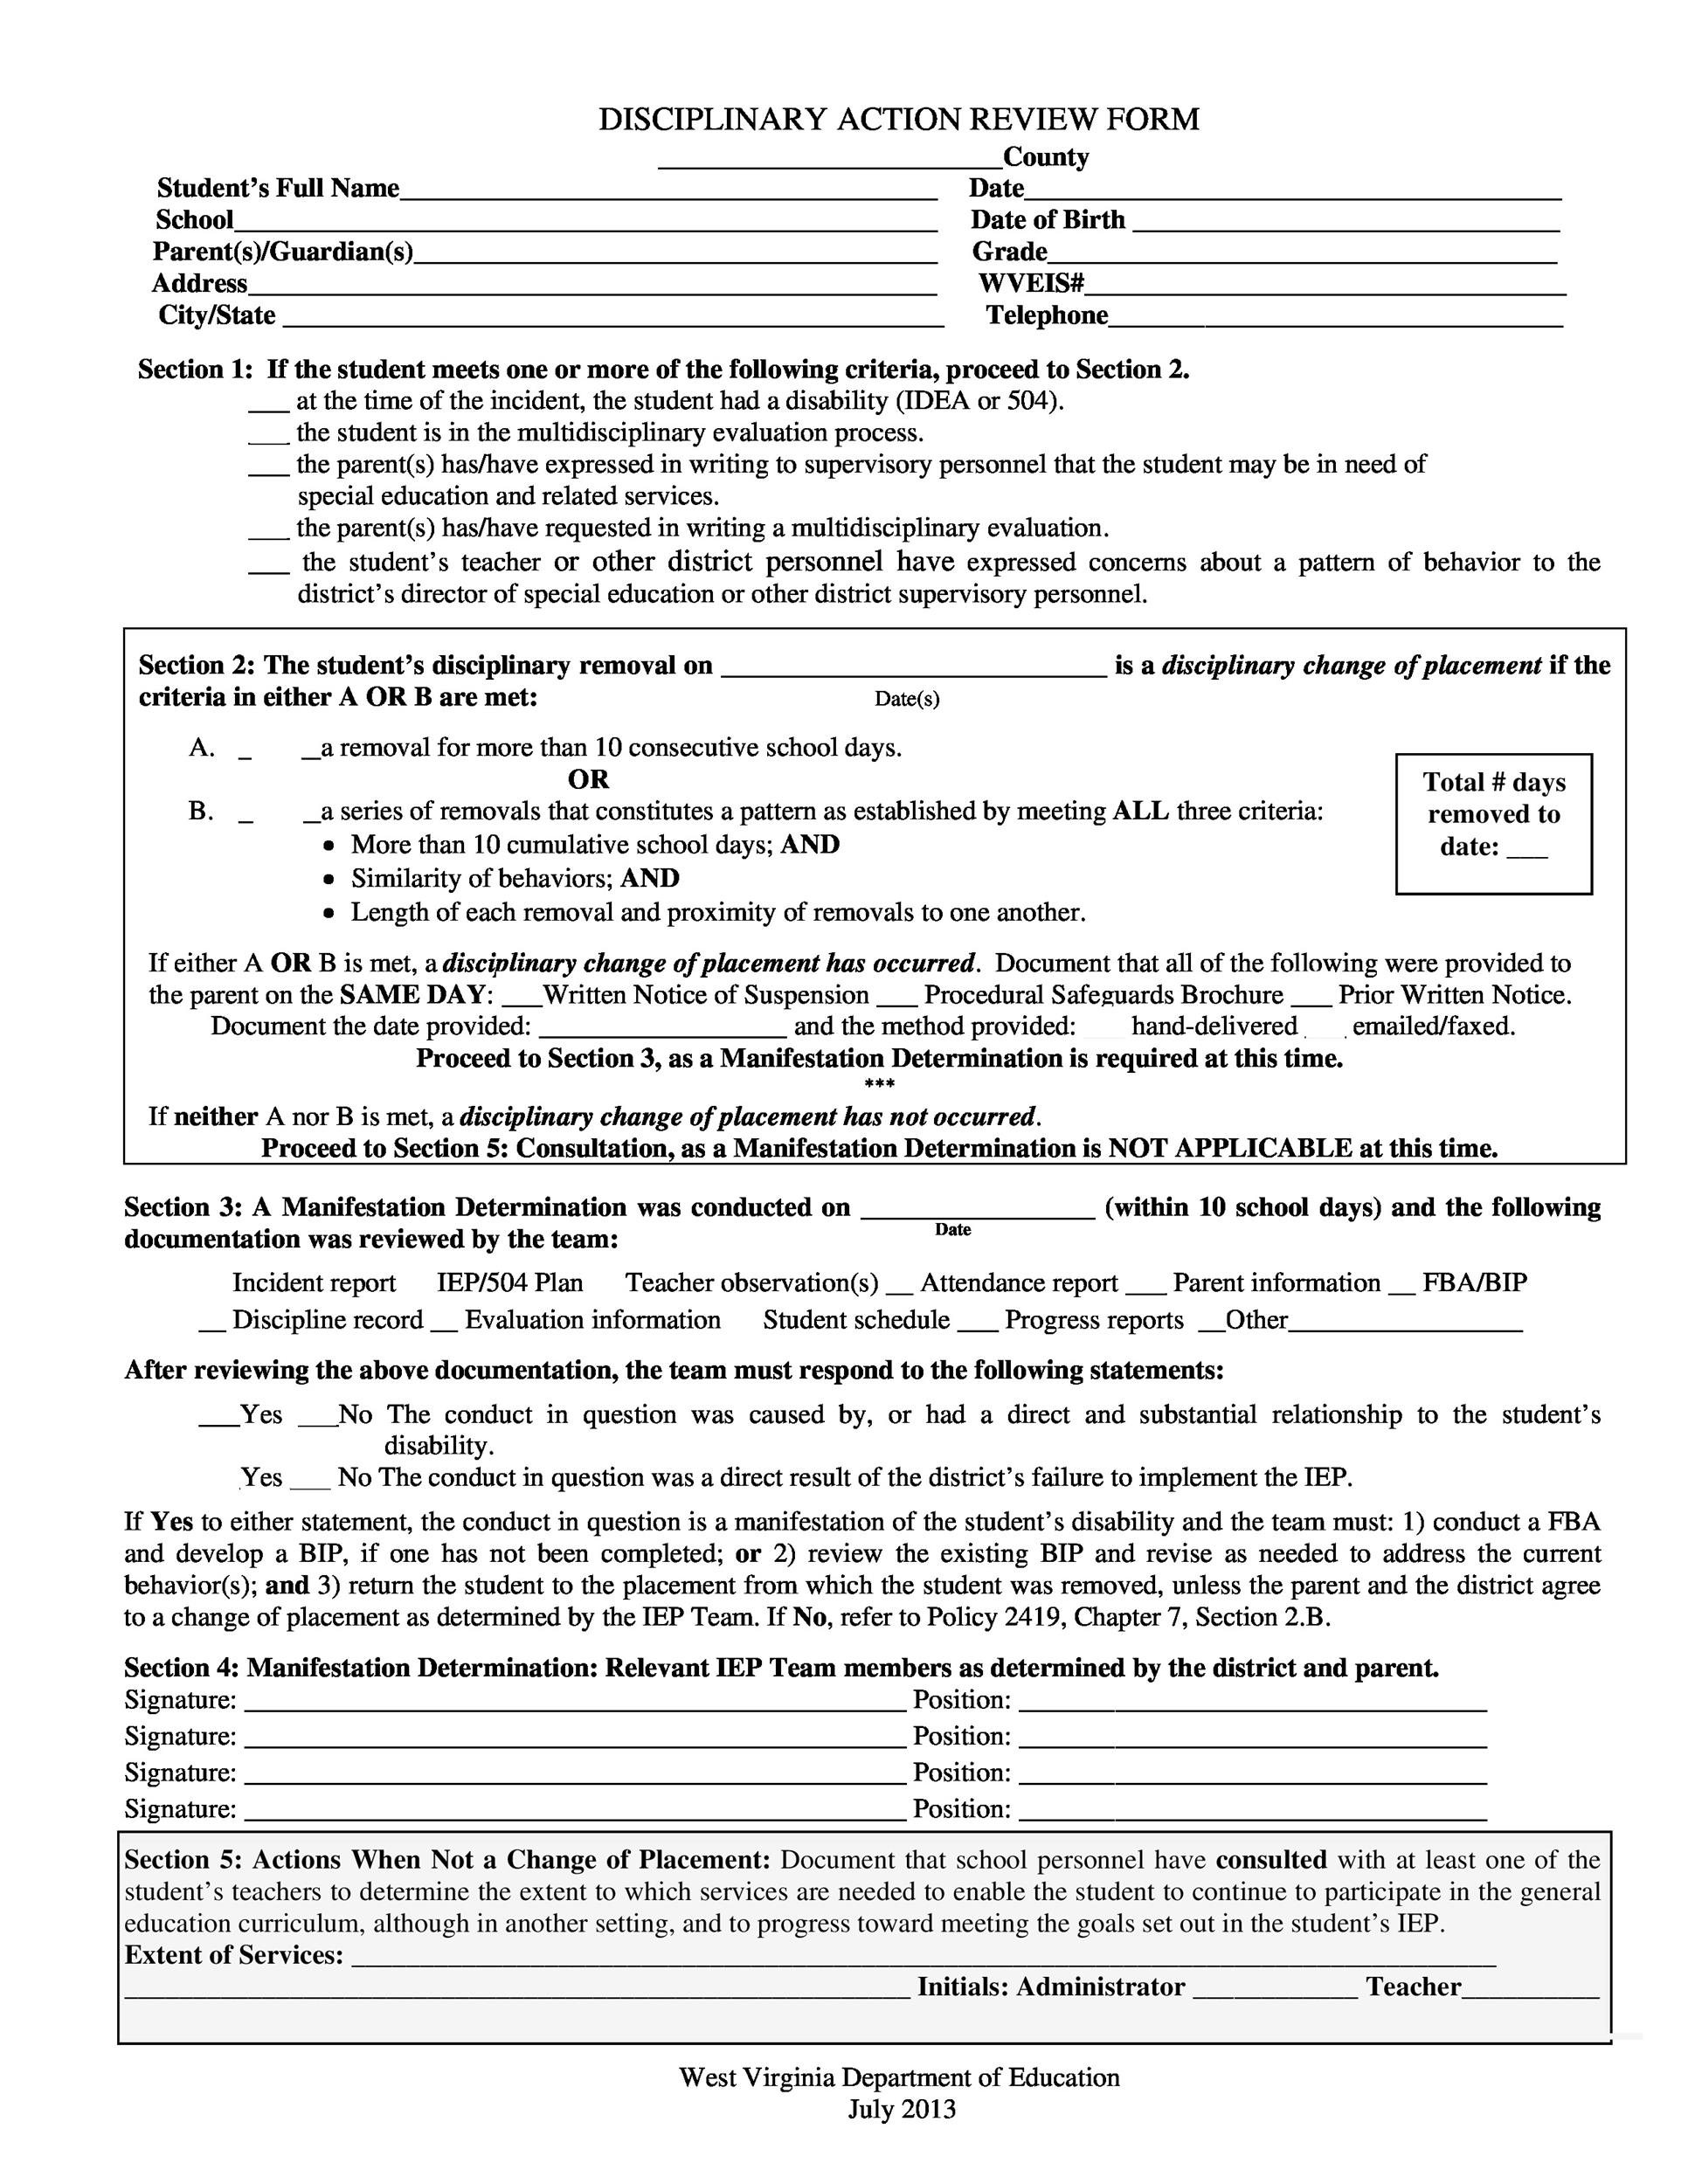 Employee Performance Evaluation Form Free Download free printable – Employee Performance Evaluation Form Free Download